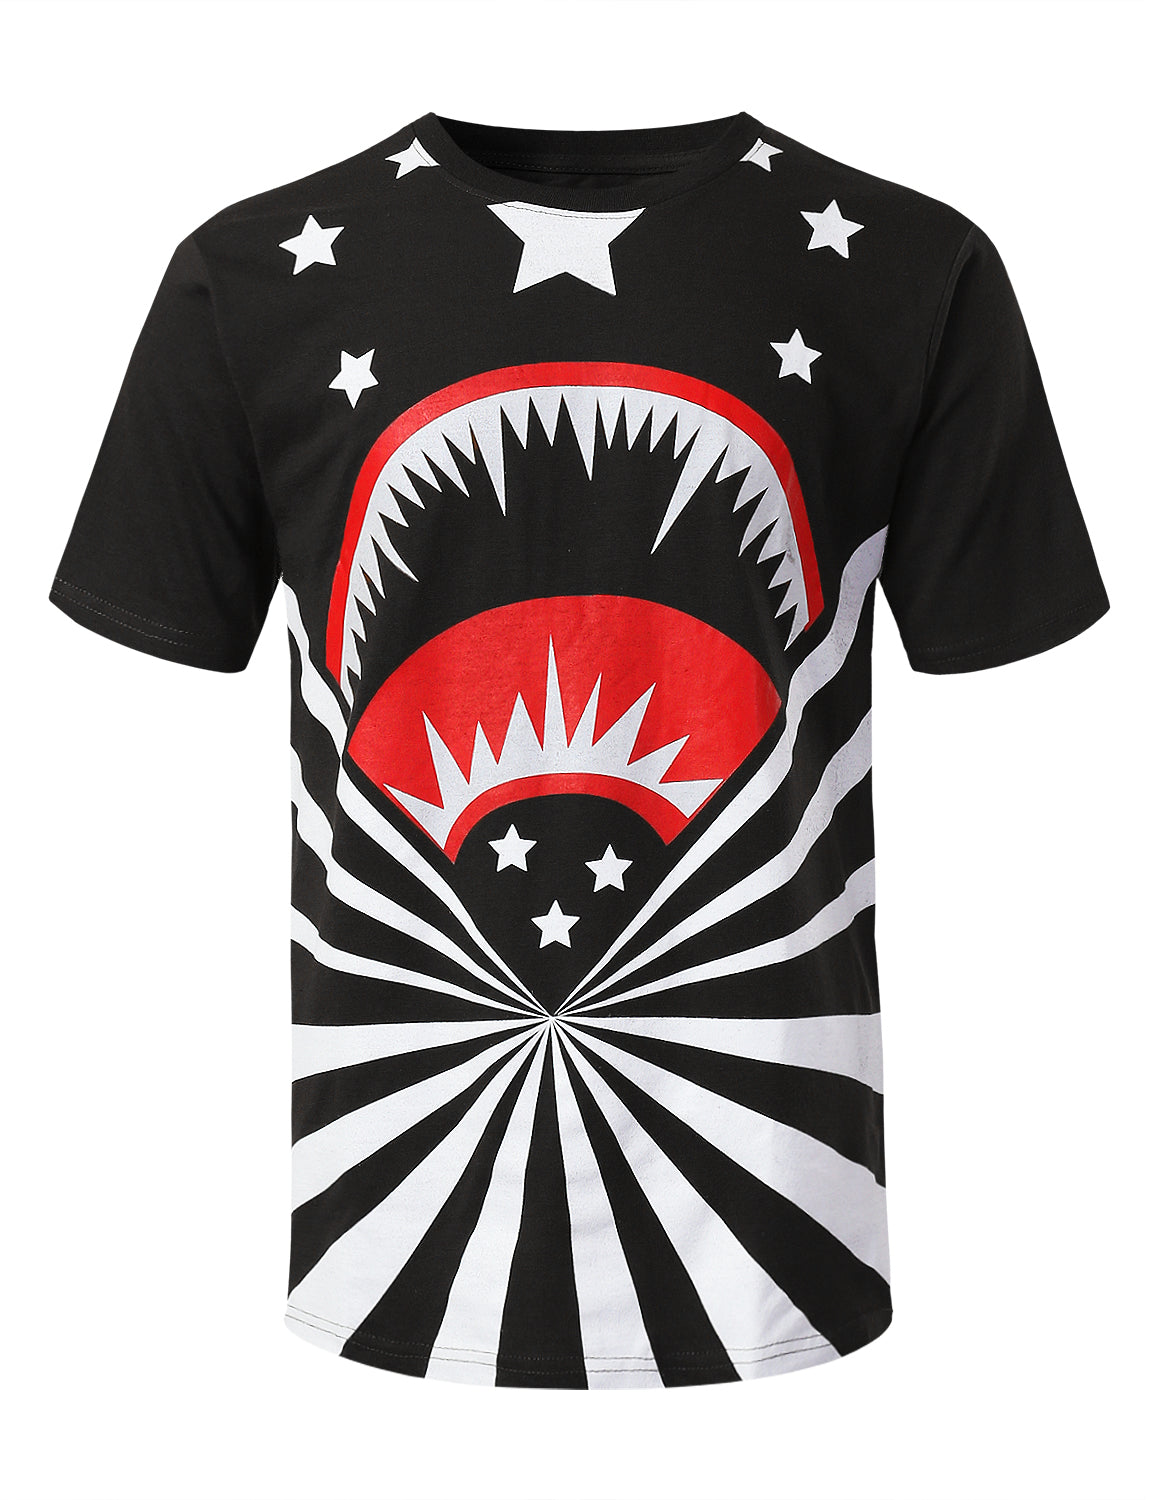 BLACK Shark Stars Graphic Print T-shirt - URBANCREWS